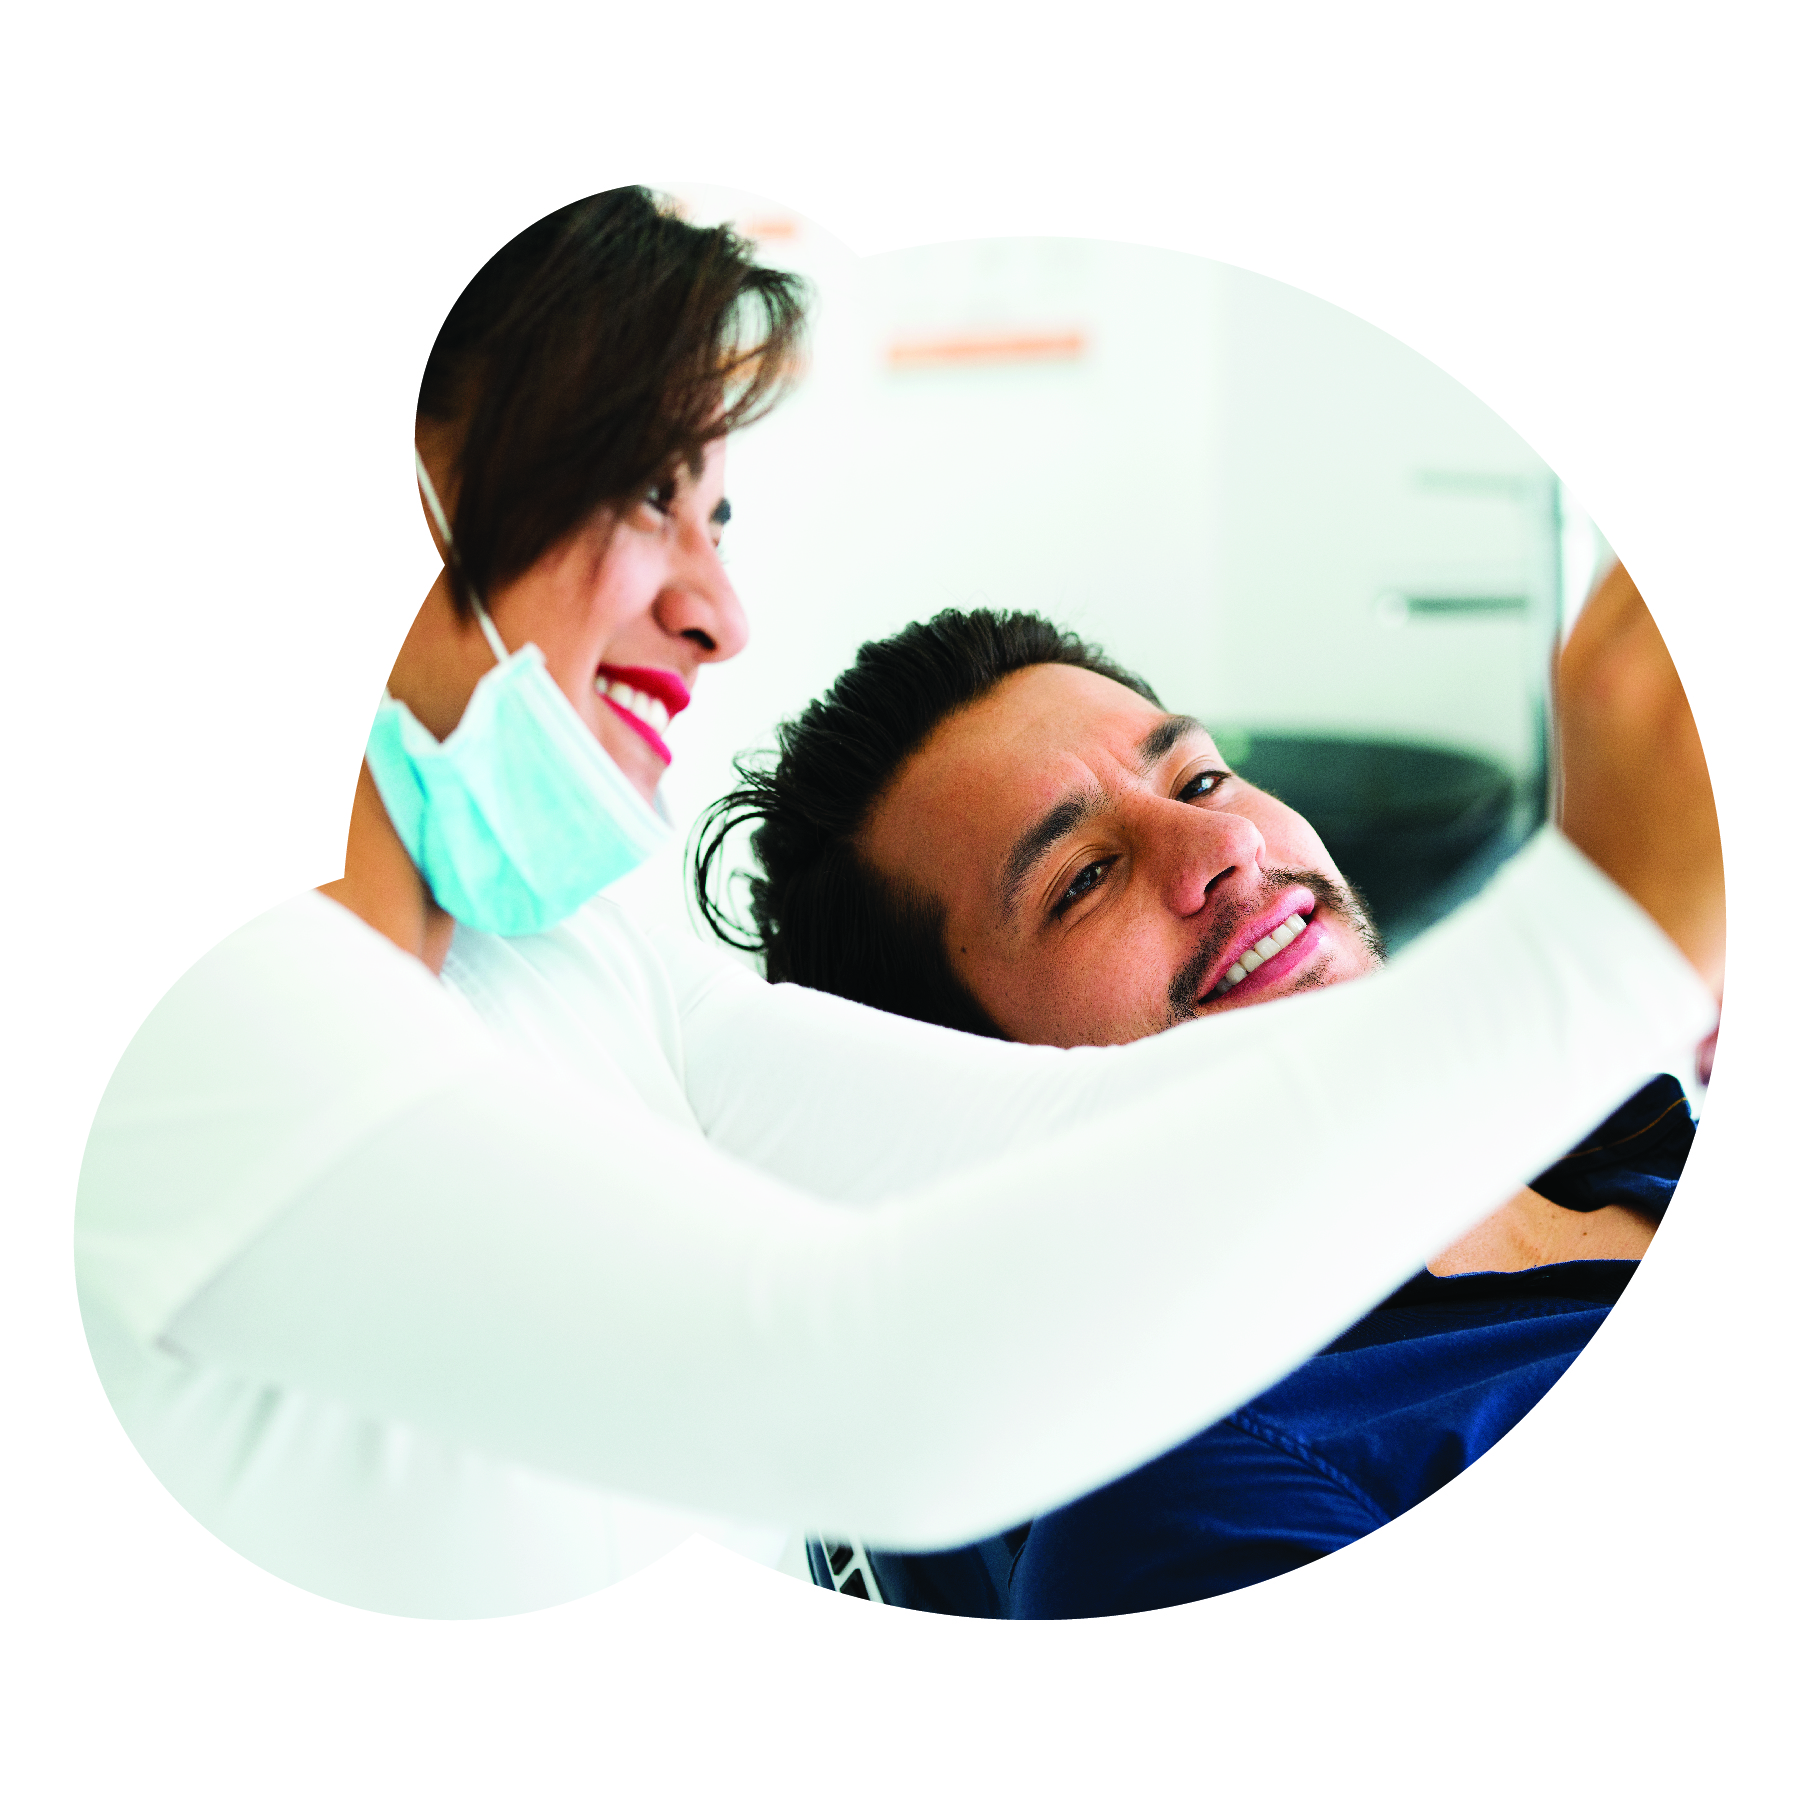 Better Relationships - miniDentist helps your dentist get to know you better even before your visit.